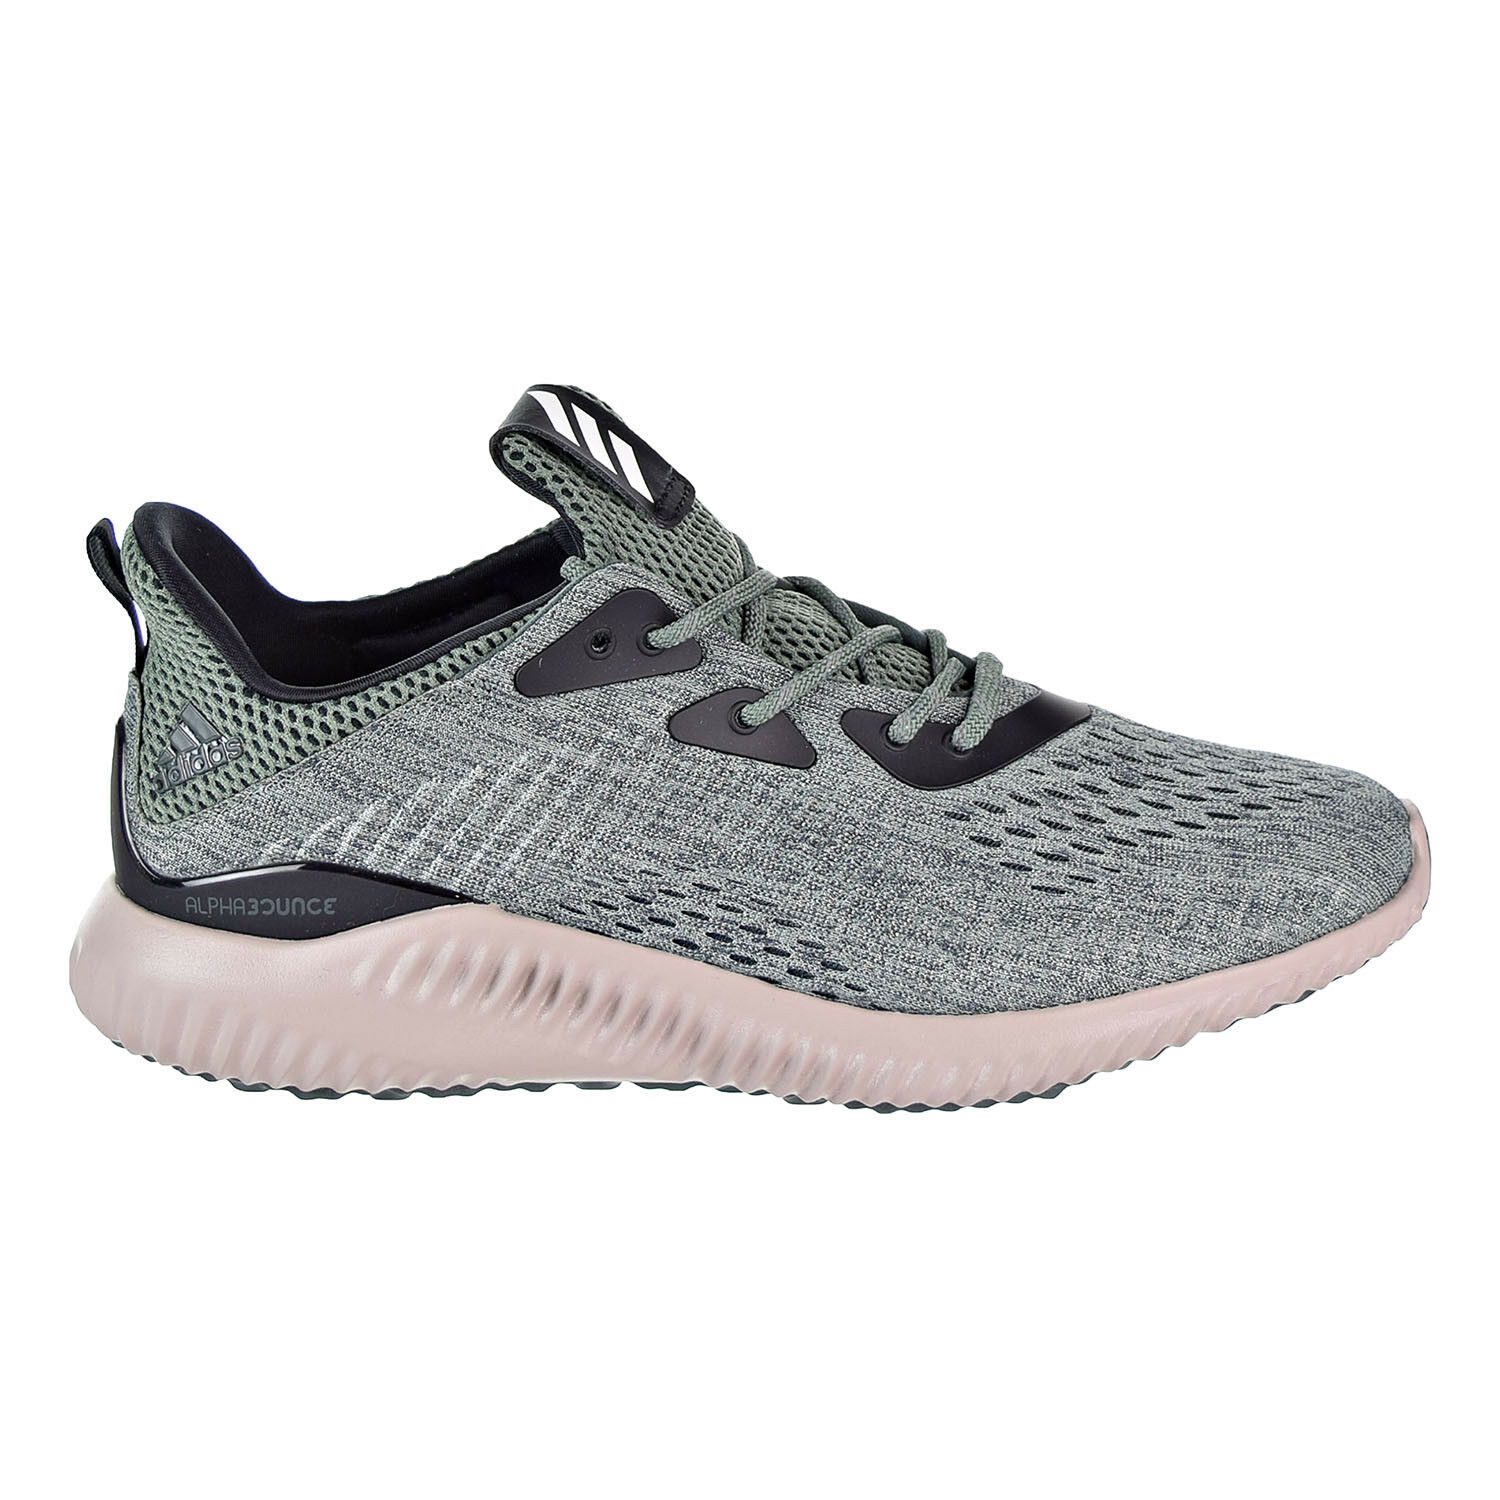 Adidas Alphabounce EM Men's Running shoes Green White BB9042